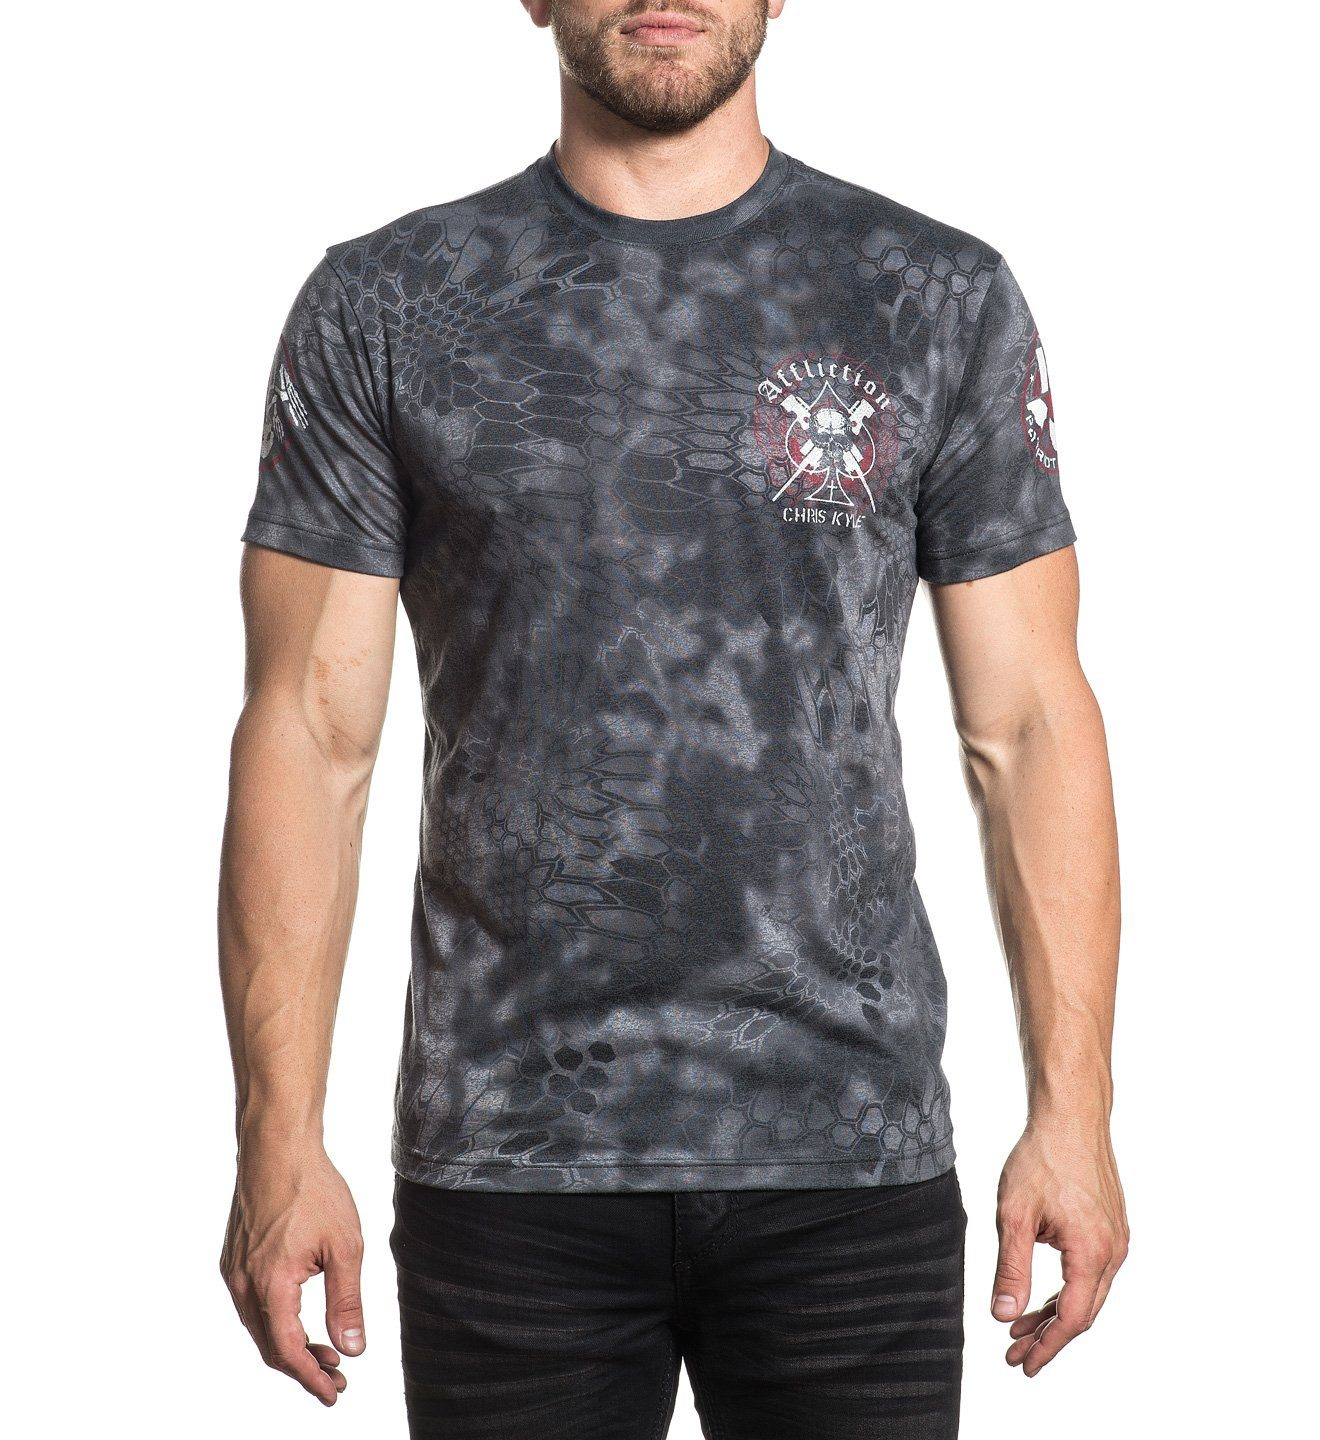 Ck Duty Bound - Mens Short Sleeve Tees - Affliction Clothing